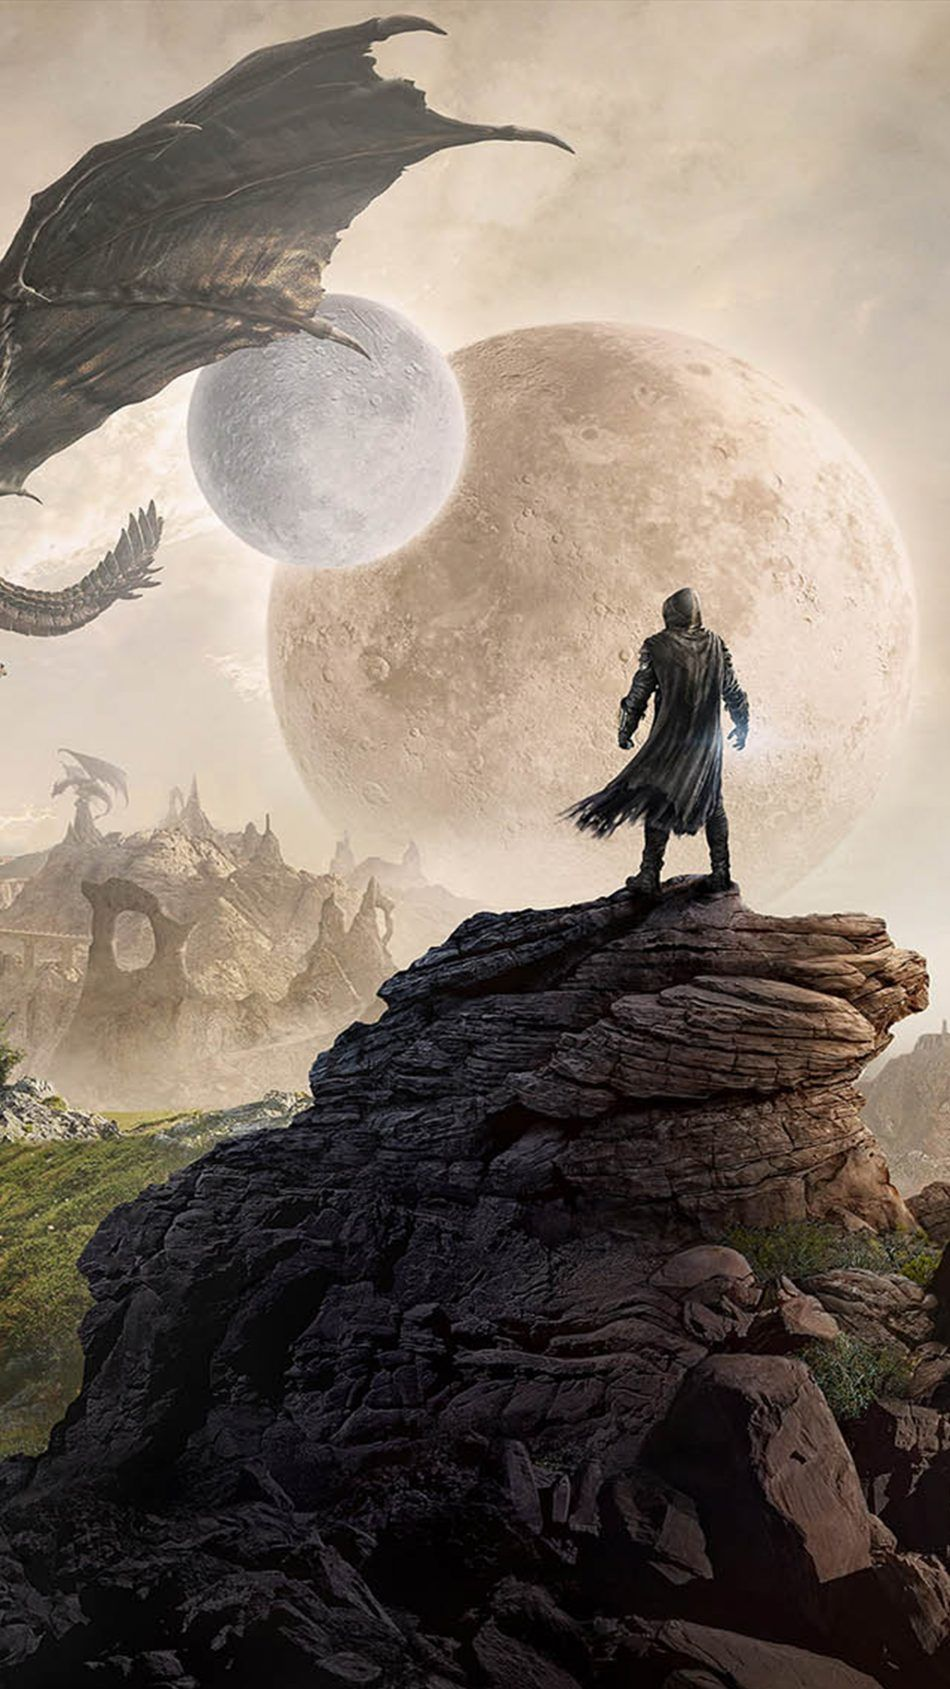 Elder Scrolls Phone Wallpapers Top Free Elder Scrolls Phone